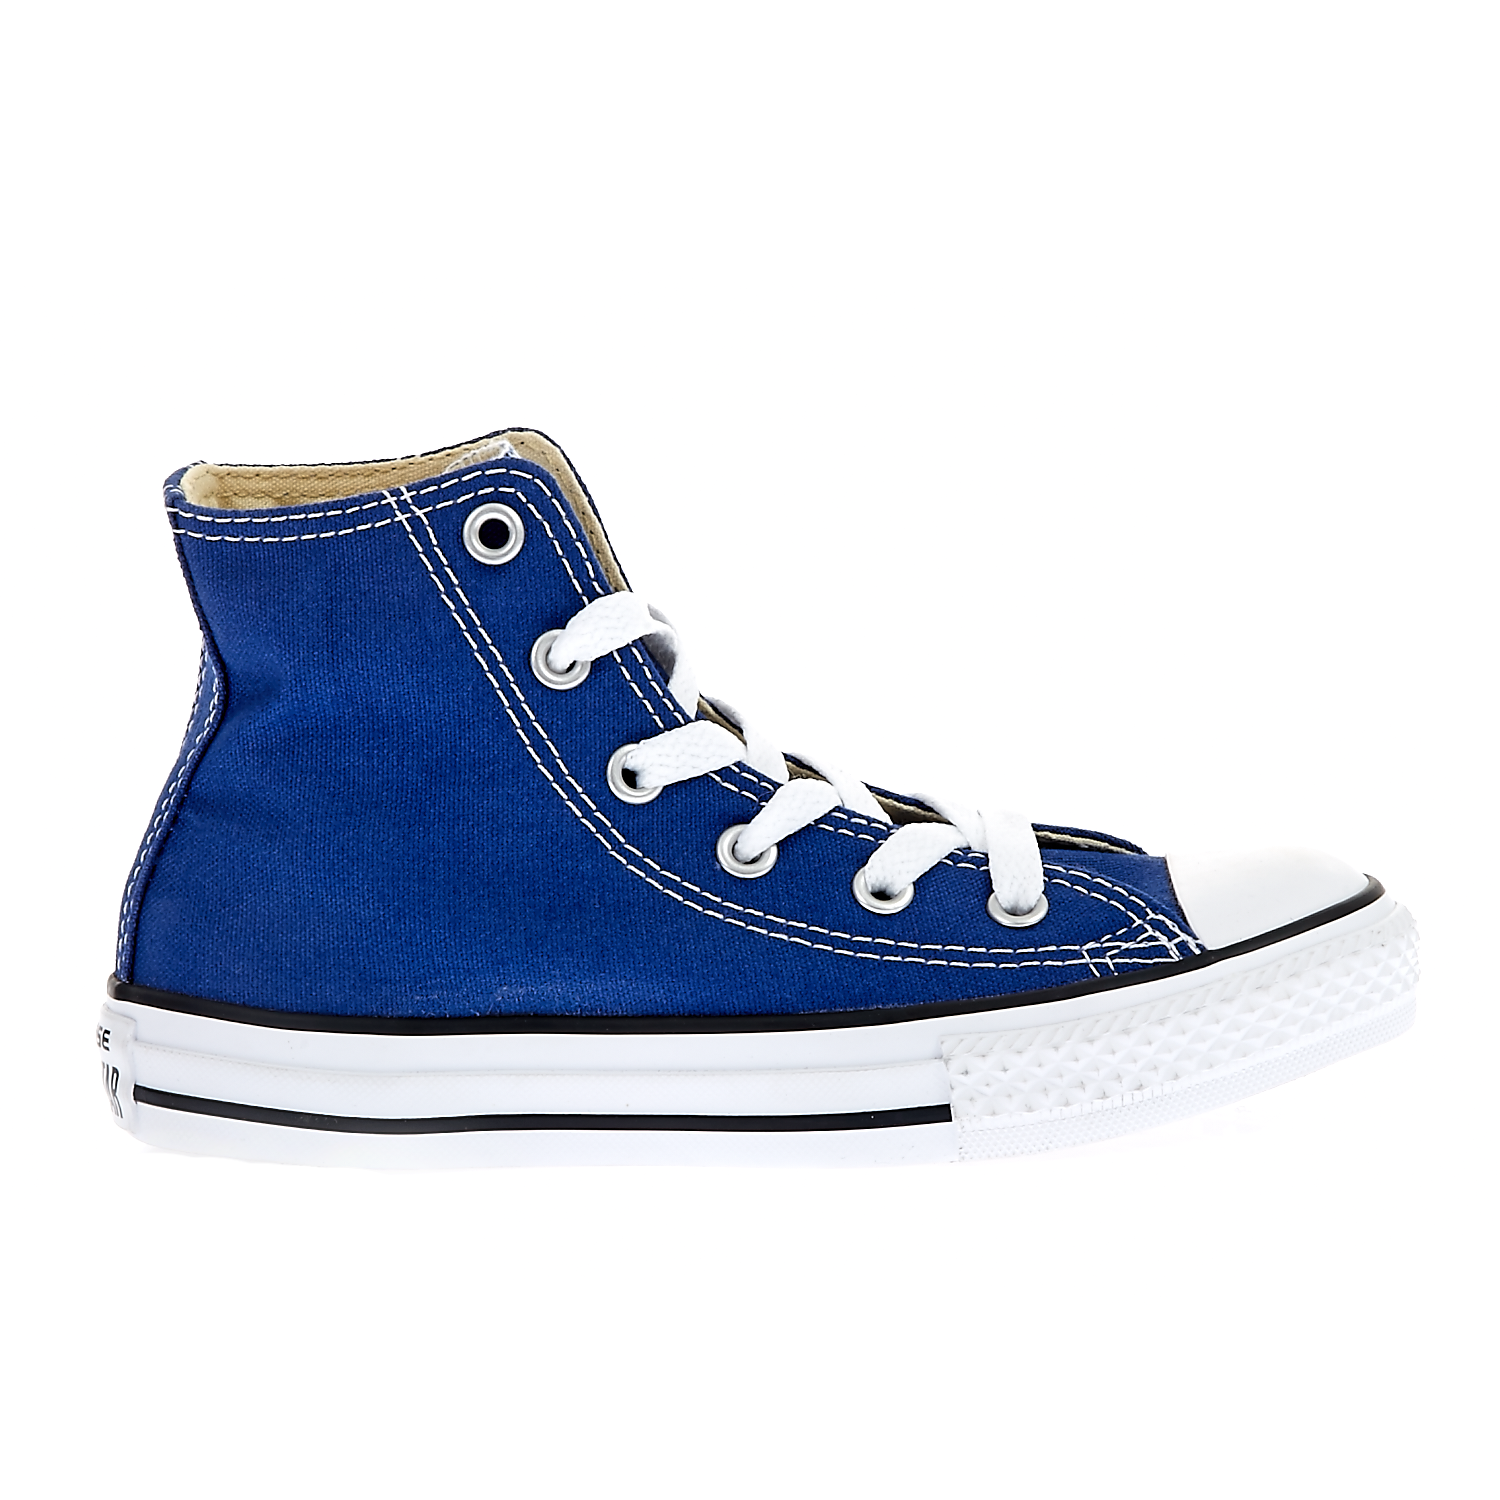 CONVERSE – Παιδικά παπούτσια Chuck Taylor All Star Hi μπλε